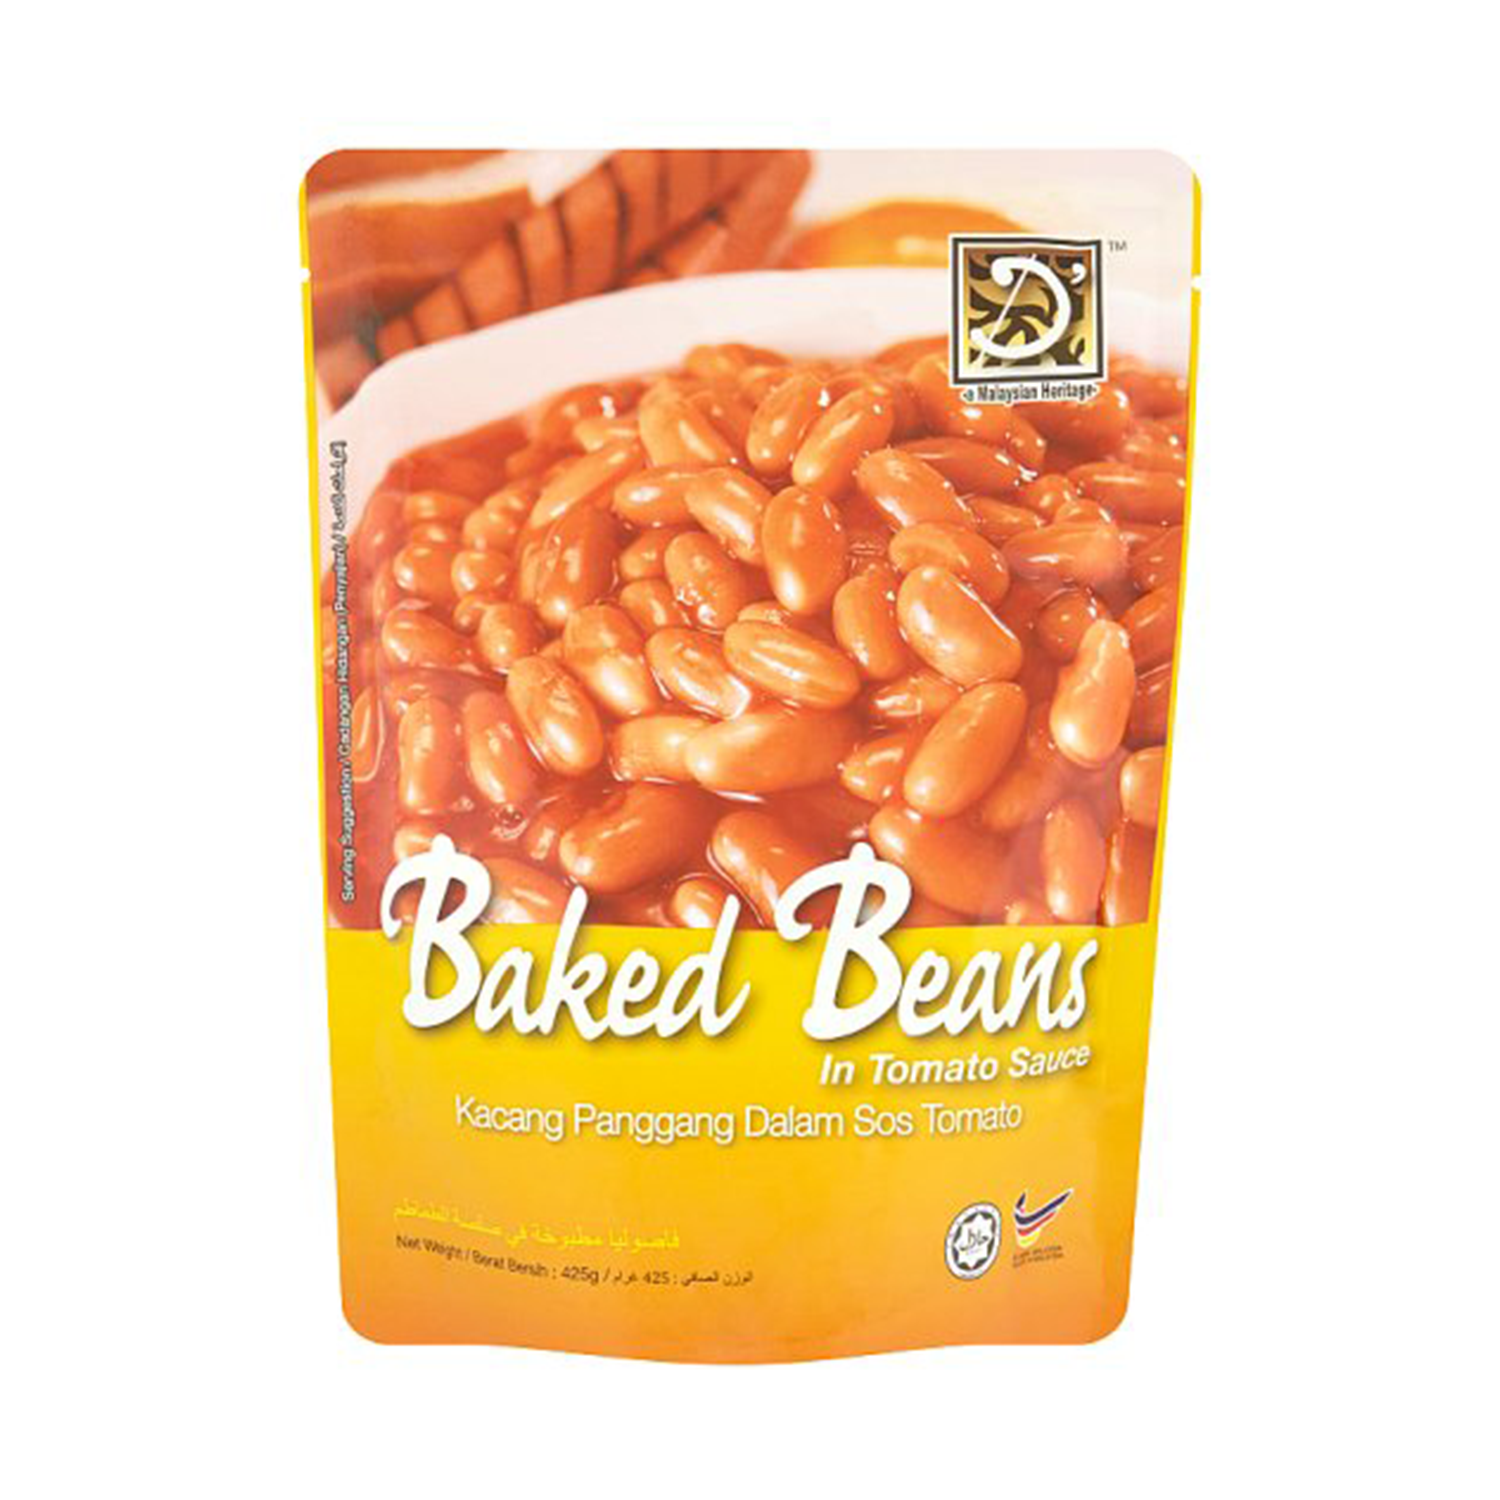 D'HERITAGE BAKED BEANS IN TOMATO SAUCE 425GM